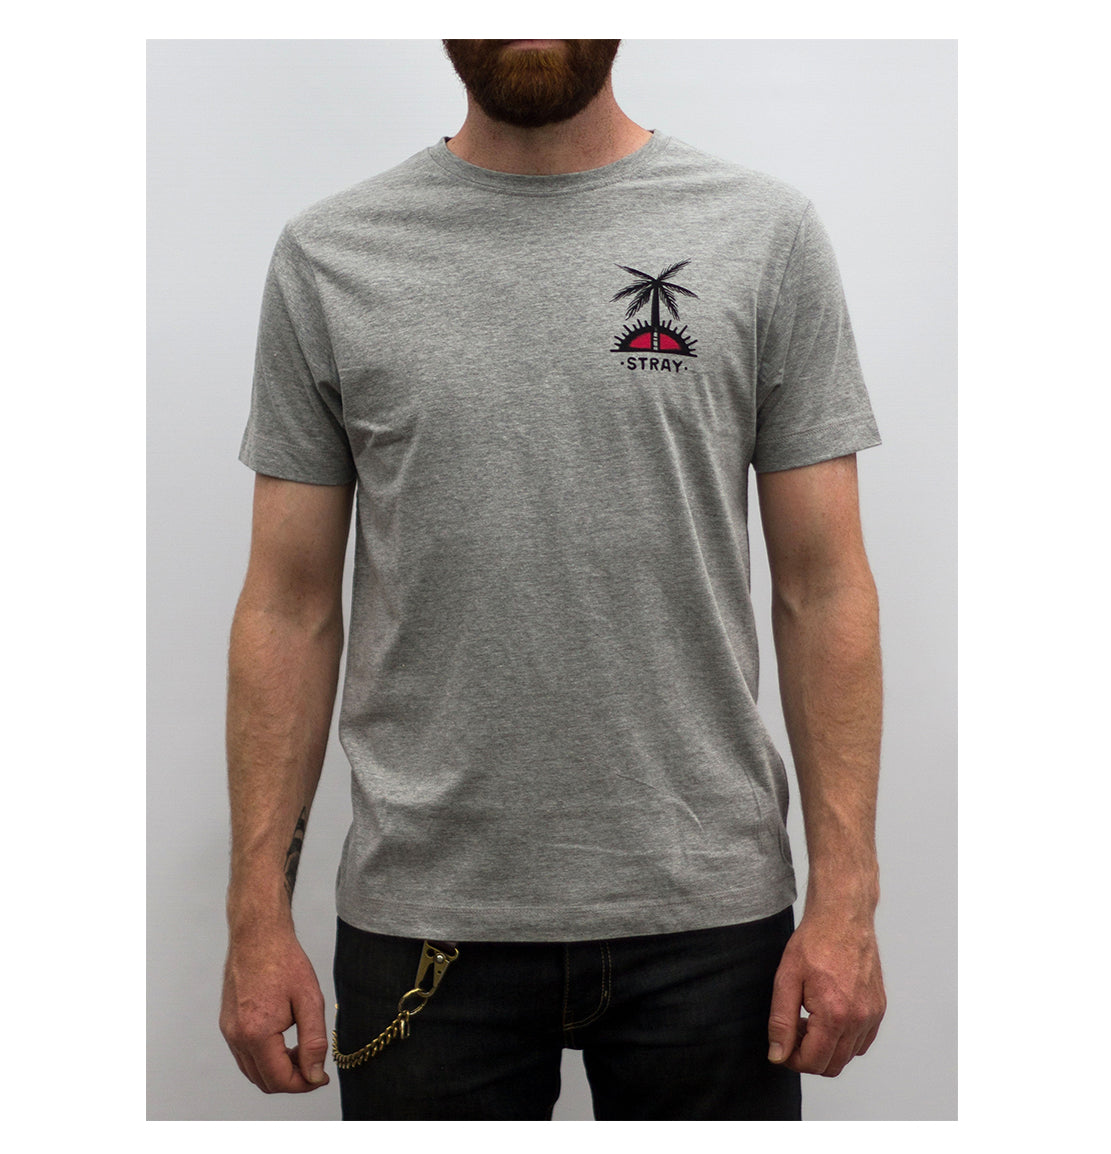 The stray club grey tee